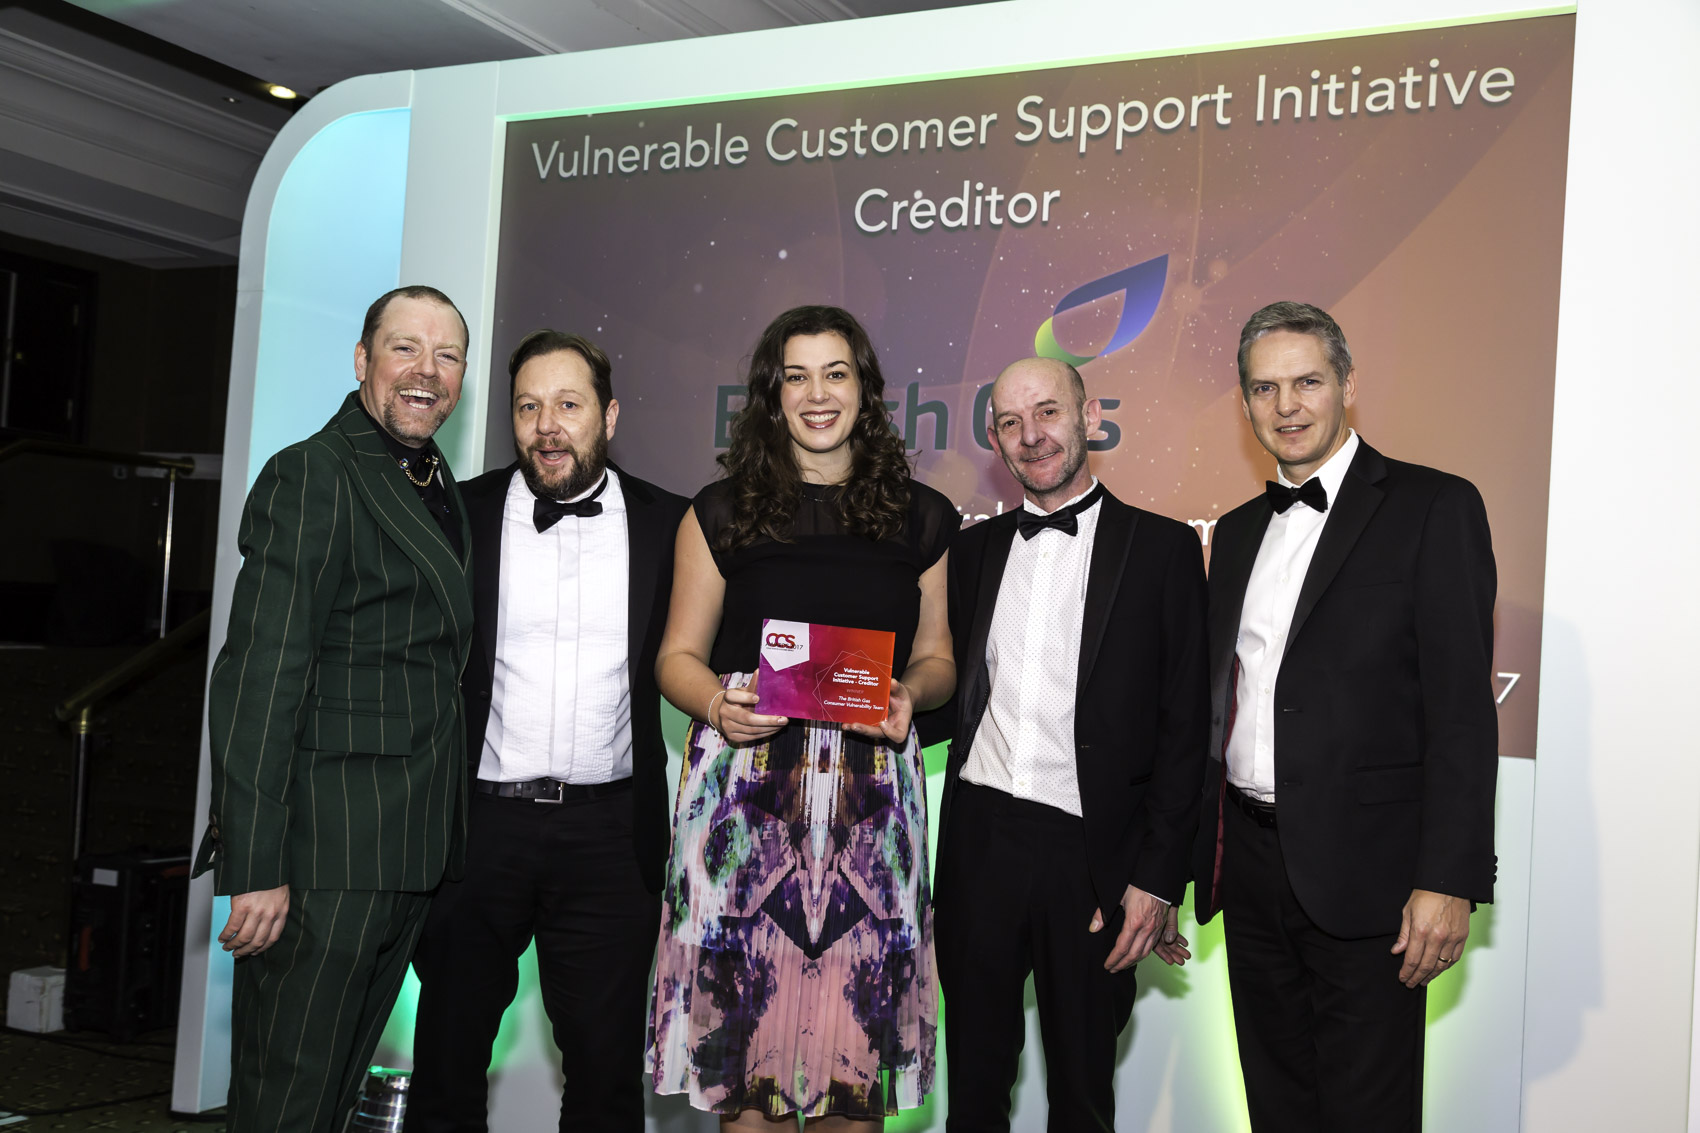 Winners CCS 2017 - 14 Vulnerable Customer Support Initiative - Creditor